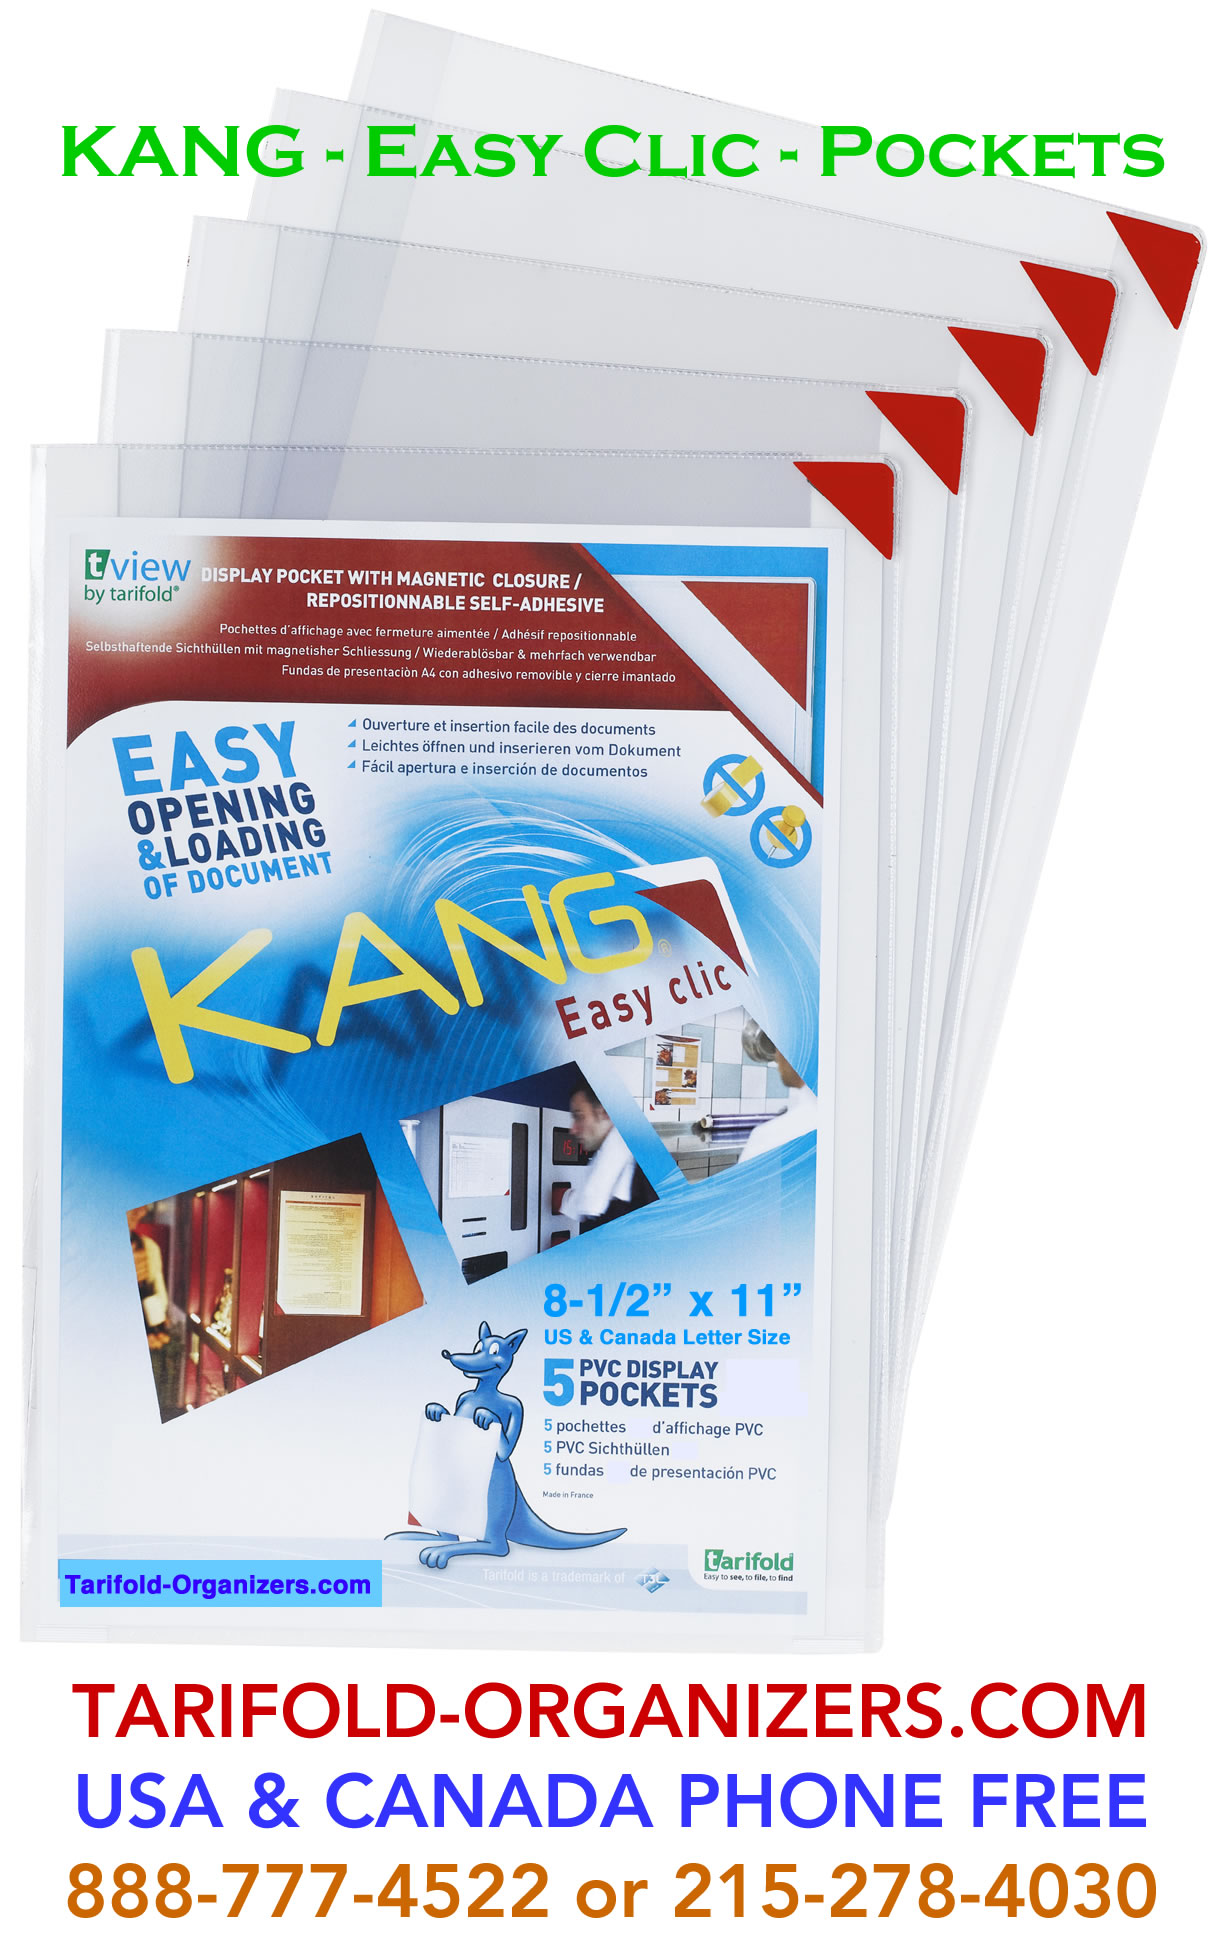 KANG easy clic pockets are in-stock at Tarifold-Organizers.com